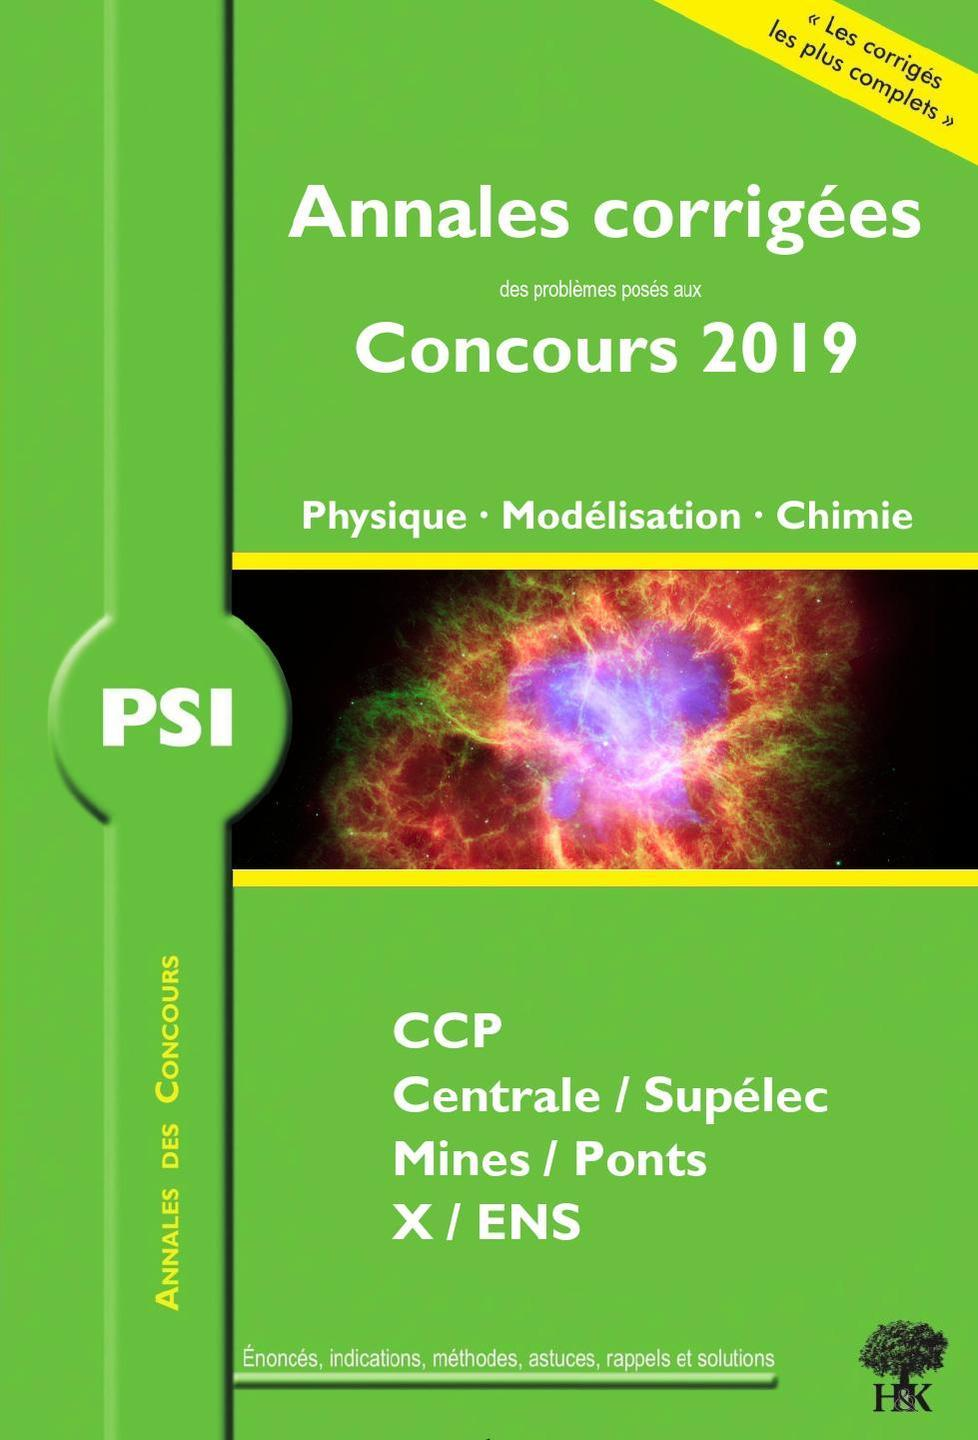 ANNALES CORRIGEES PSI PROBLEMES CONCOURS 2019 PHYSIQUE MODELISATION CHIMIE